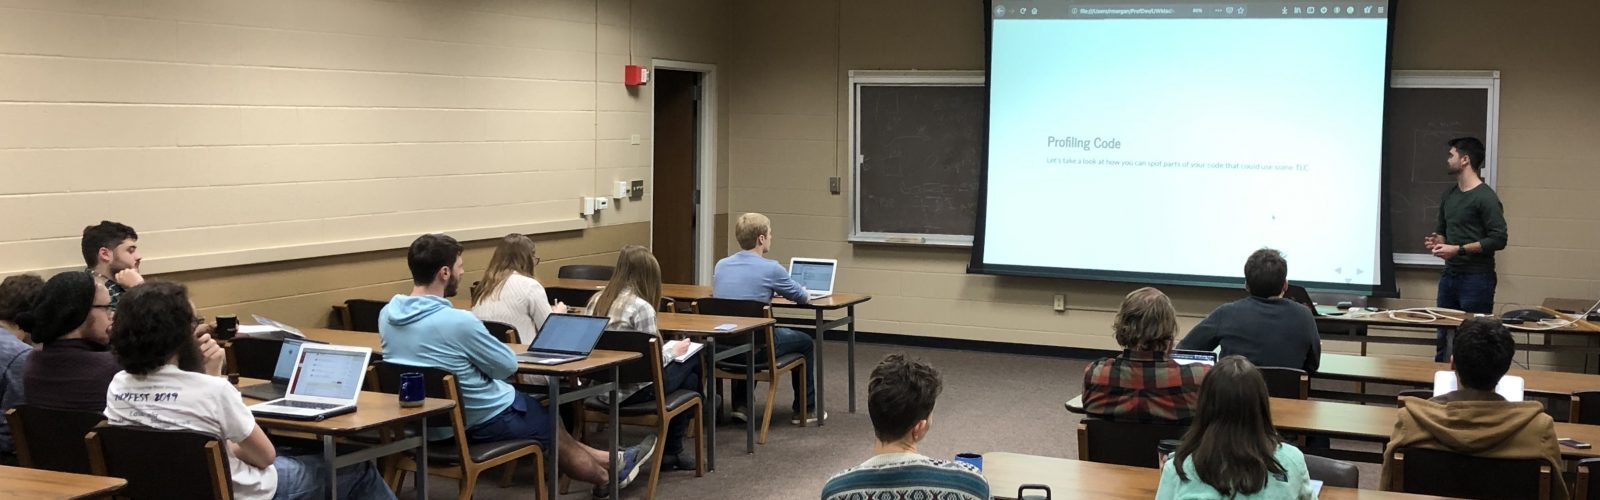 a conference room with students viewing a professional development presentation